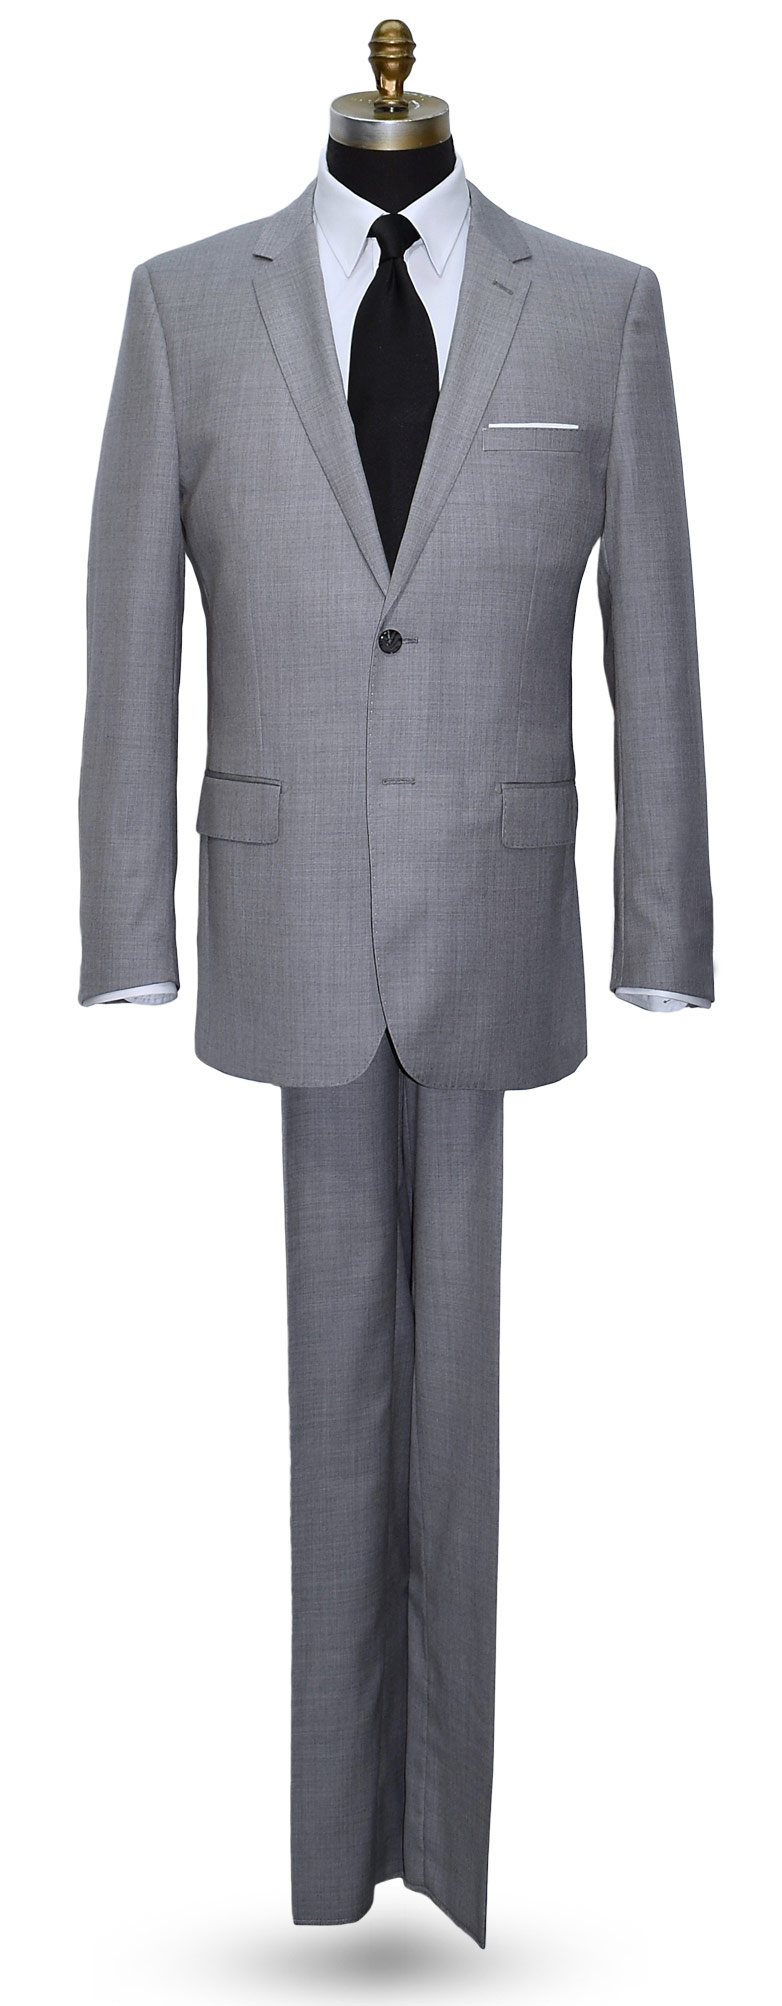 Stone Light Gray Men's Suit Coat and Pants Set